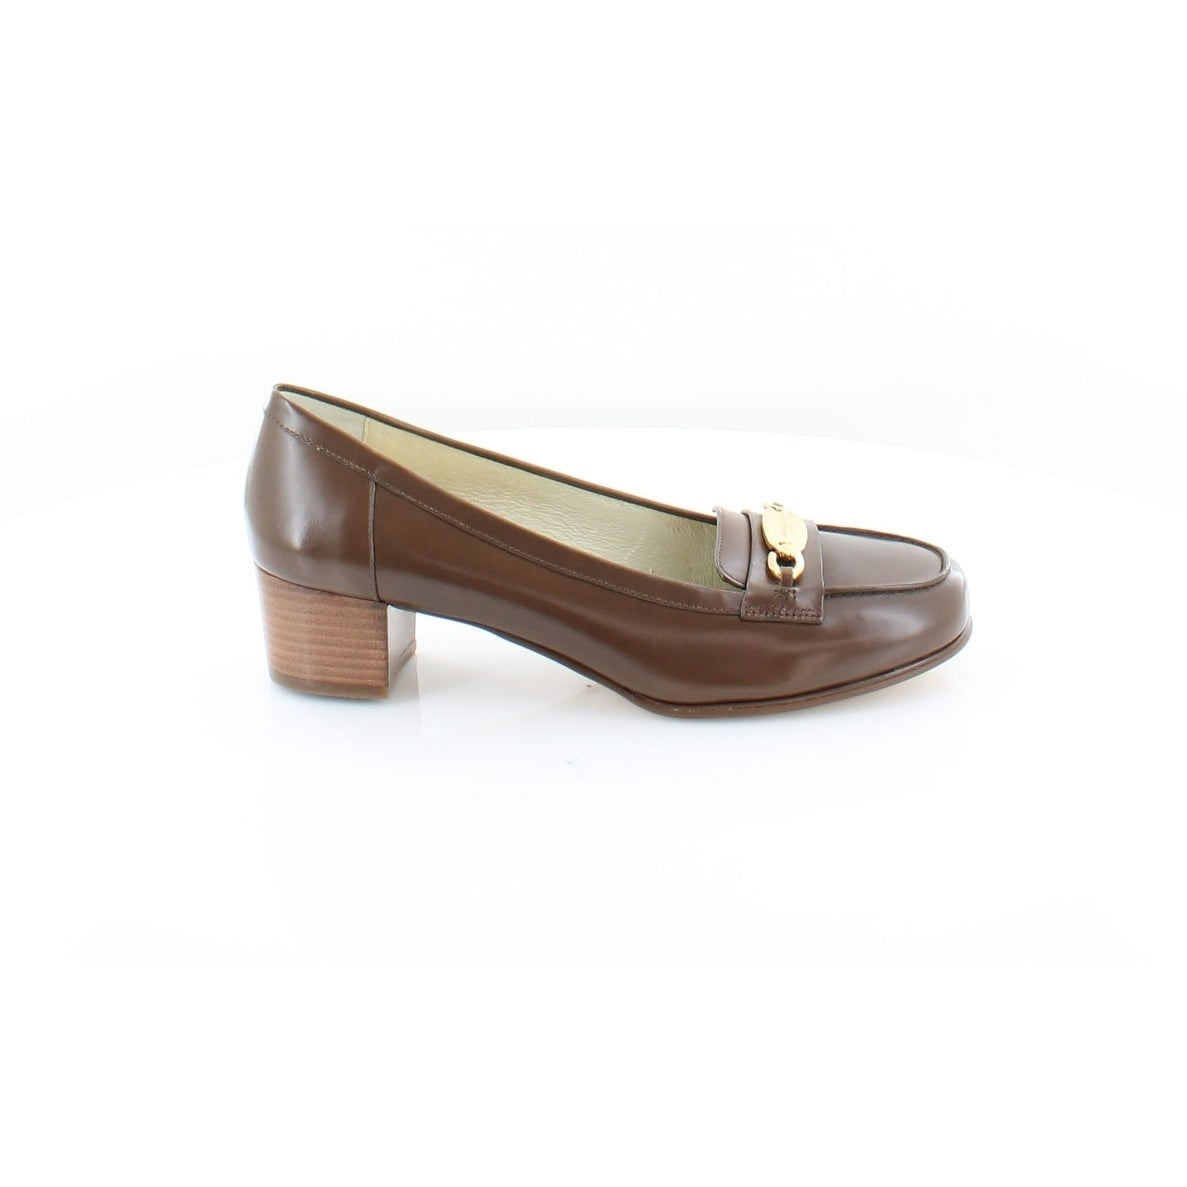 675a4bf608a Shop Michael Kors Lainy Loafers Women s Heels Dk Caramel - 8 - Free  Shipping Today - Overstock - 23549428